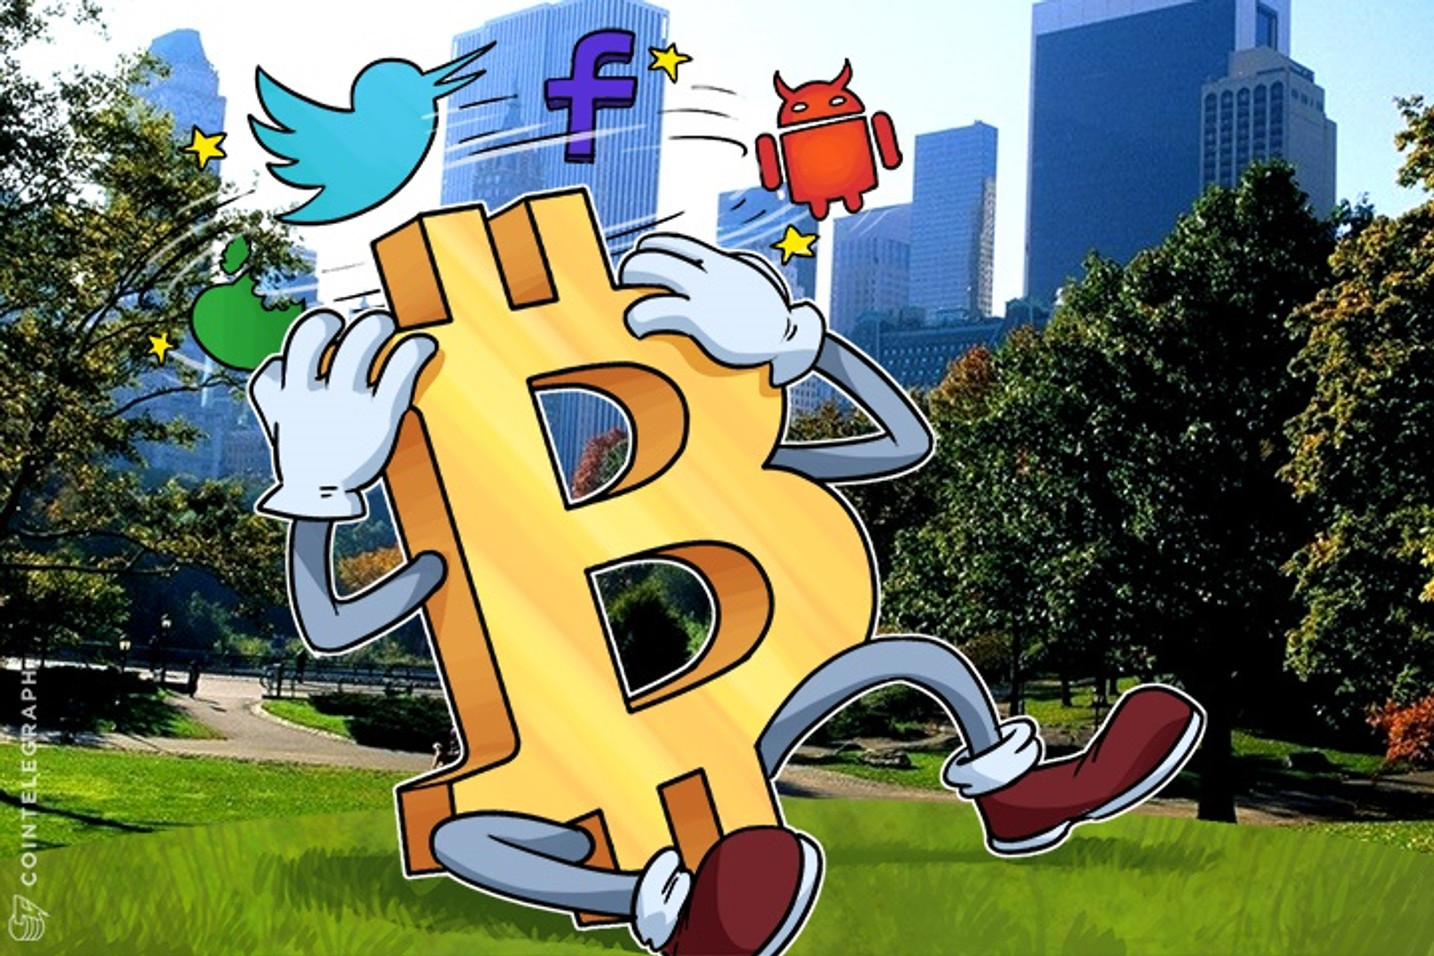 From Hacks to Fake Apps, Bitcoin's Other Headache to Cure